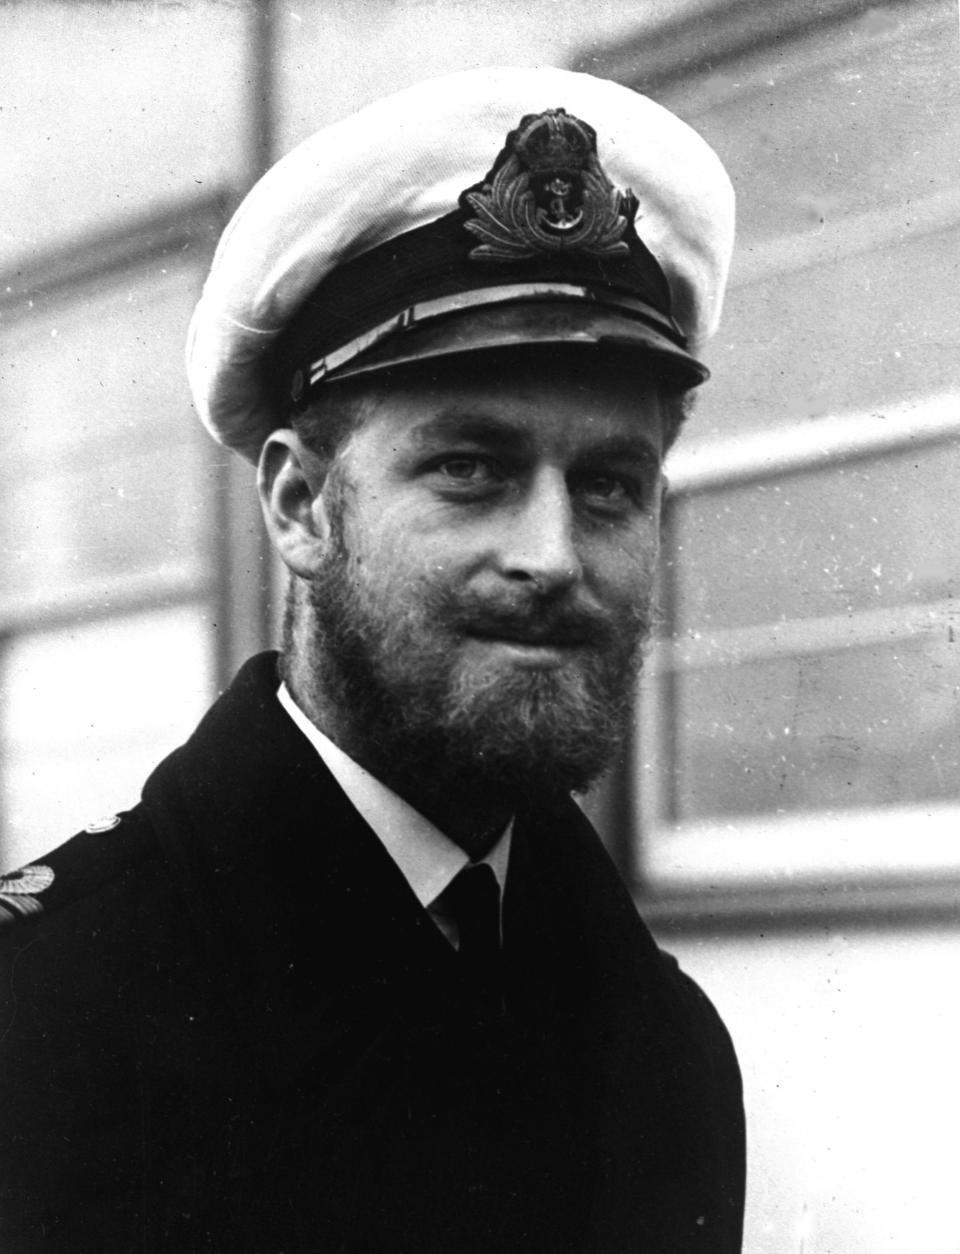 FILE - In this file photo dated August 29 1945, Prince Philip of Greece, now Britain's Duke of Edinburgh, during a naval visit to Melbourne, Australia. Prince Philip who died Friday April 9, 2021, aged 99, lived through a tumultuous century of war and upheavals, but he helped forge a period of stability for the British monarchy under his wife, Queen Elizabeth II. Philip joined the Royal Navy and saw action during World War II on battleships in the Indian Ocean, the Mediterranean and the Pacific. (AP Photo, FILE)